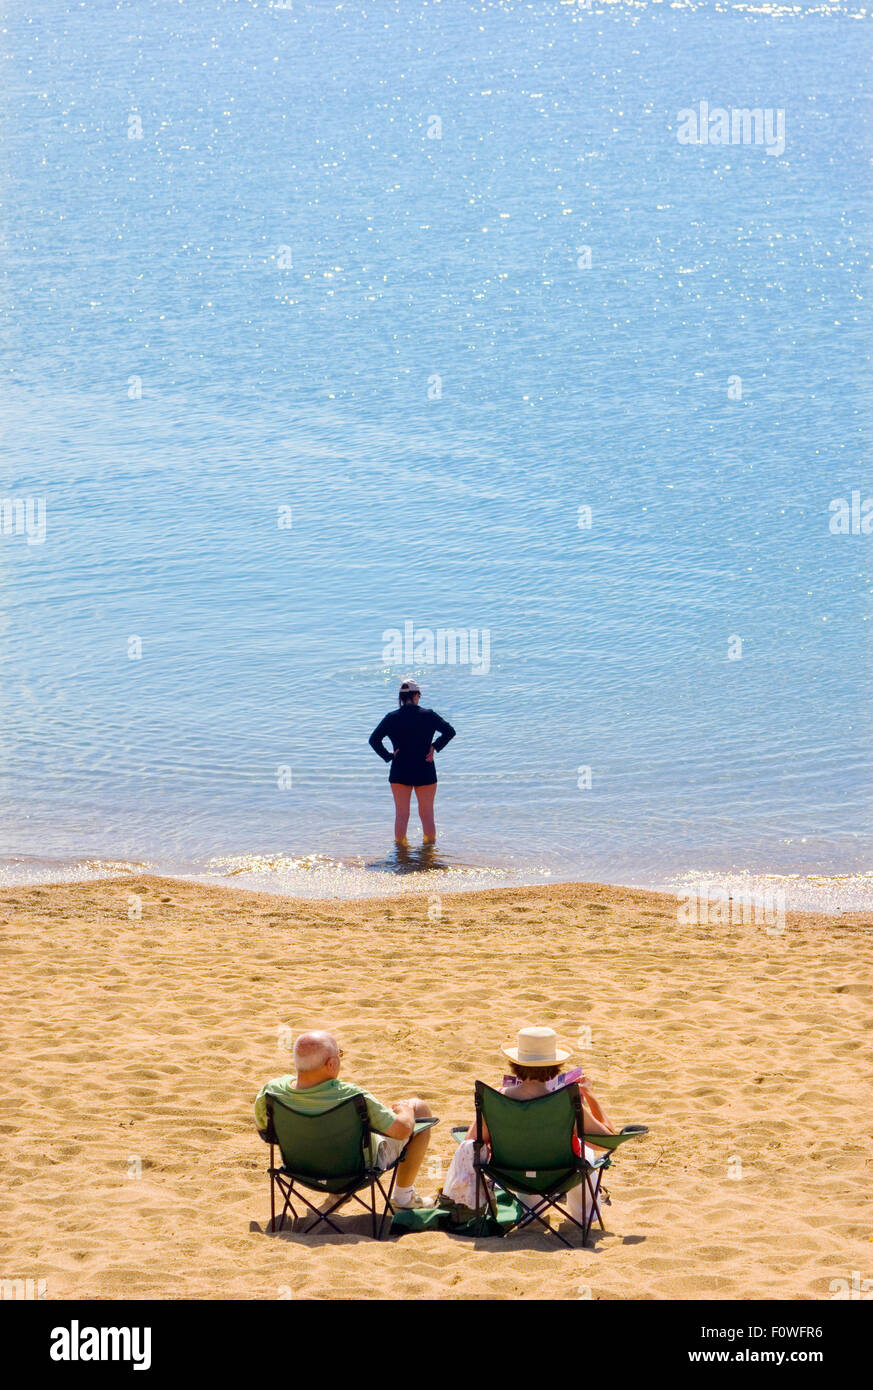 sunbathers on the beach in deck chairs and paddling in the blue sea. - Stock Image